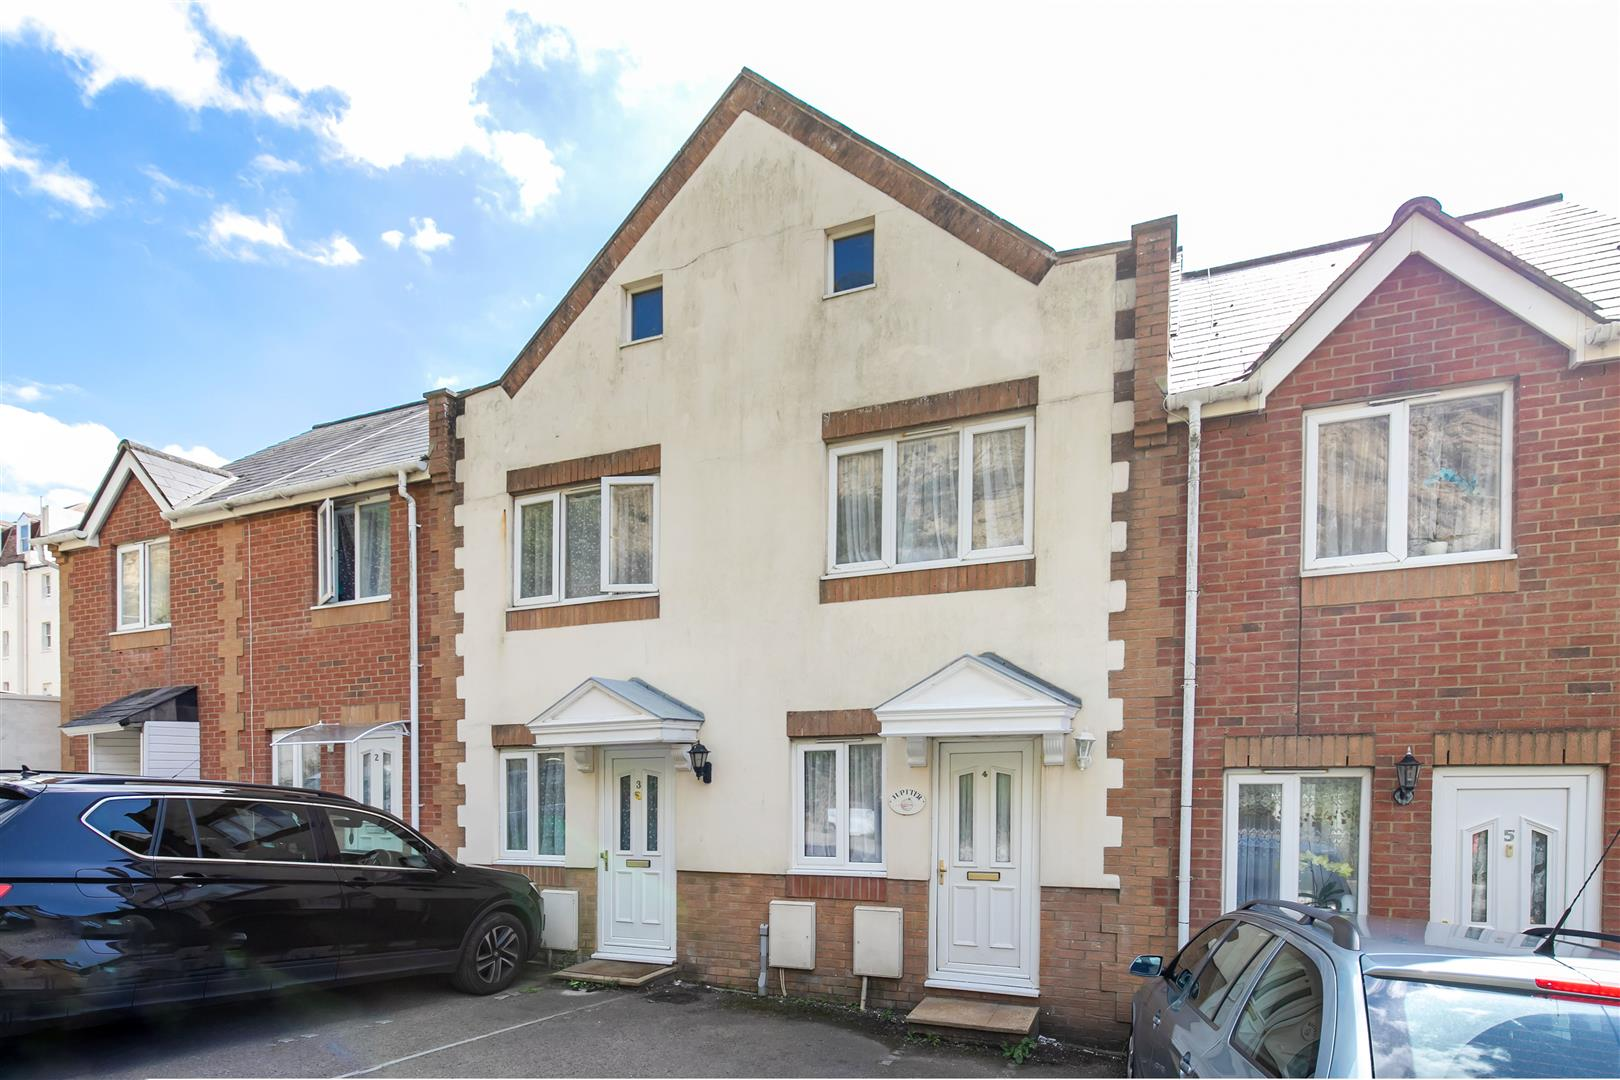 2 bed terraced-house for sale in Caves Road, St. Leonards-On-Sea, TN38